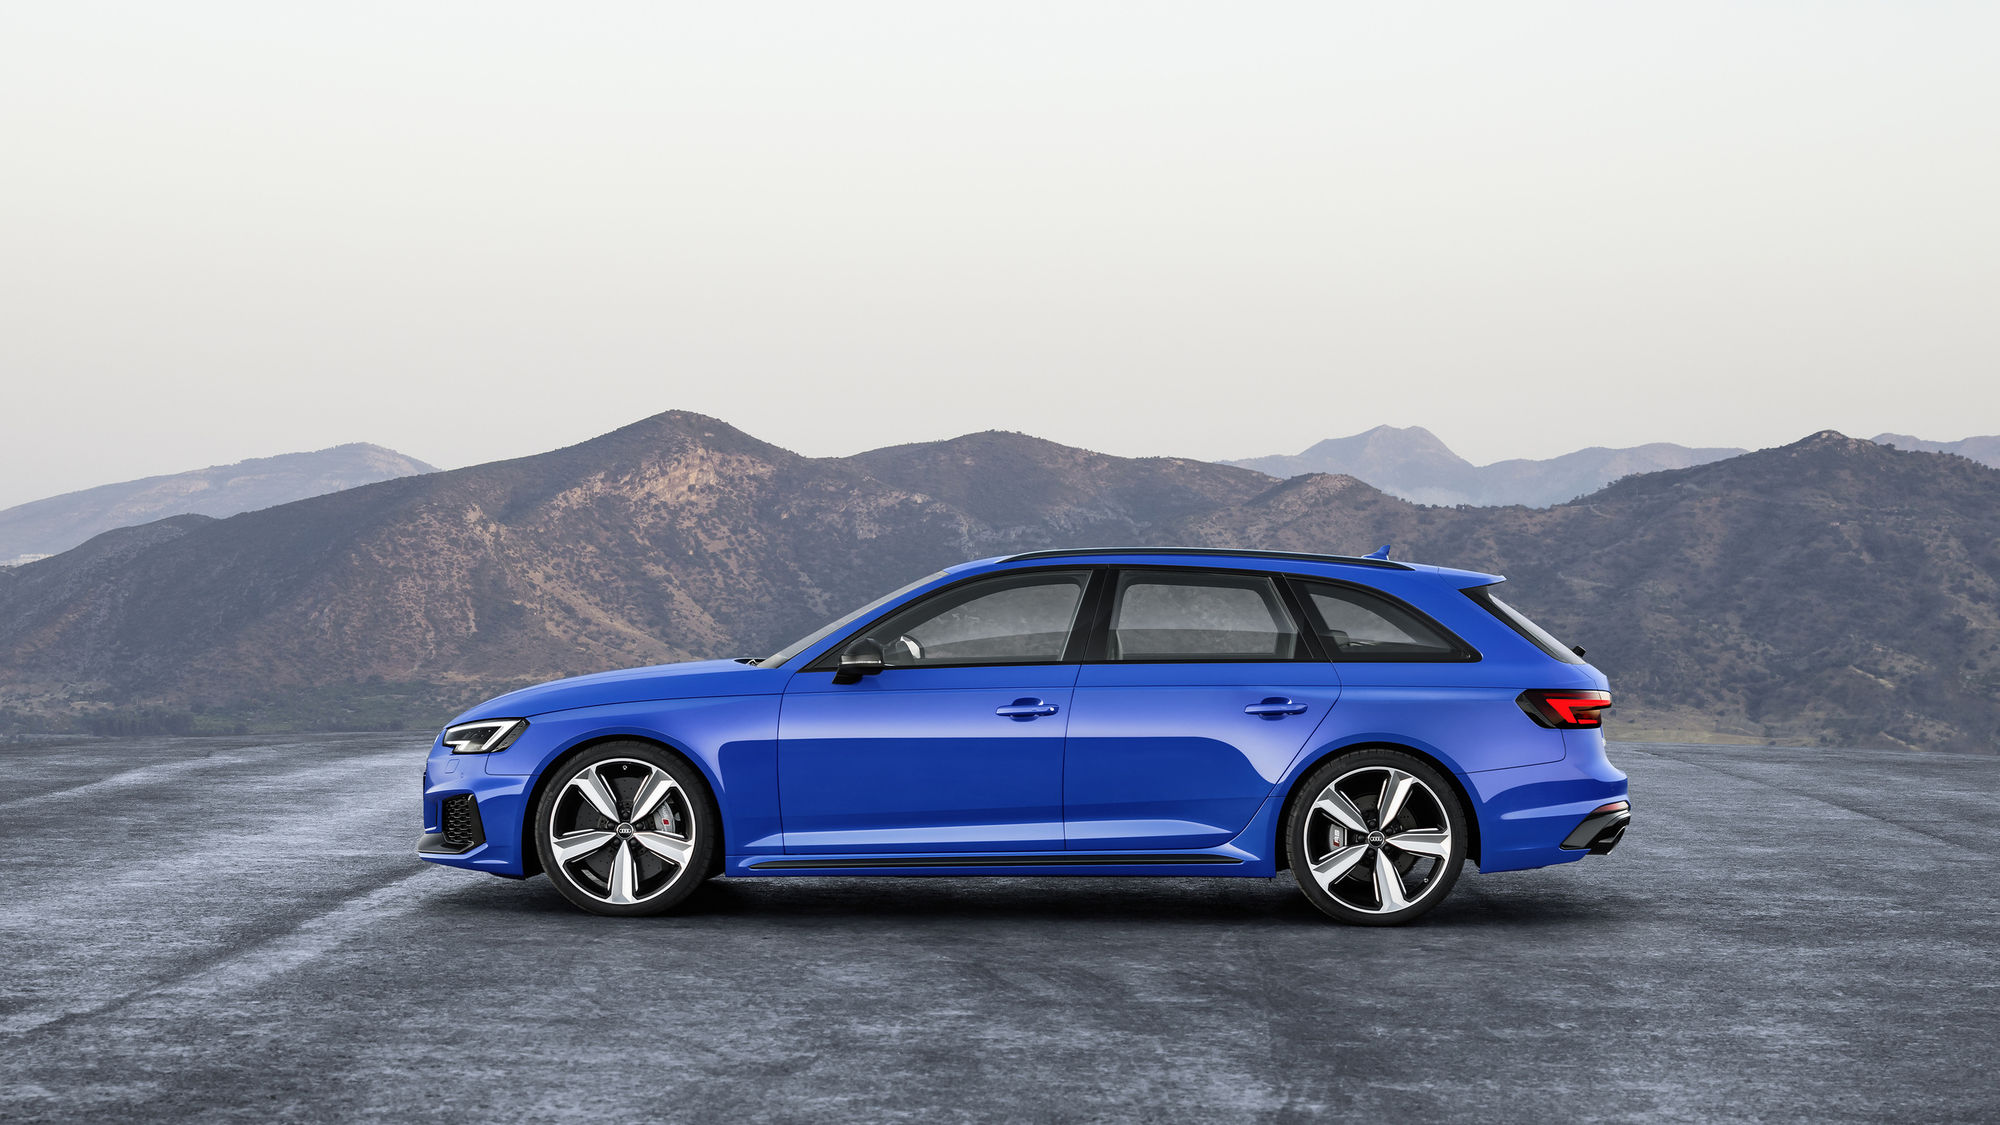 The New Audi Wagon Cranks Out 450 Horse This Impressive Figure Is Achieved By A 2 9 Tfsi V6 Biturbo Engine With Peak Torque Of 442 Pound Feet